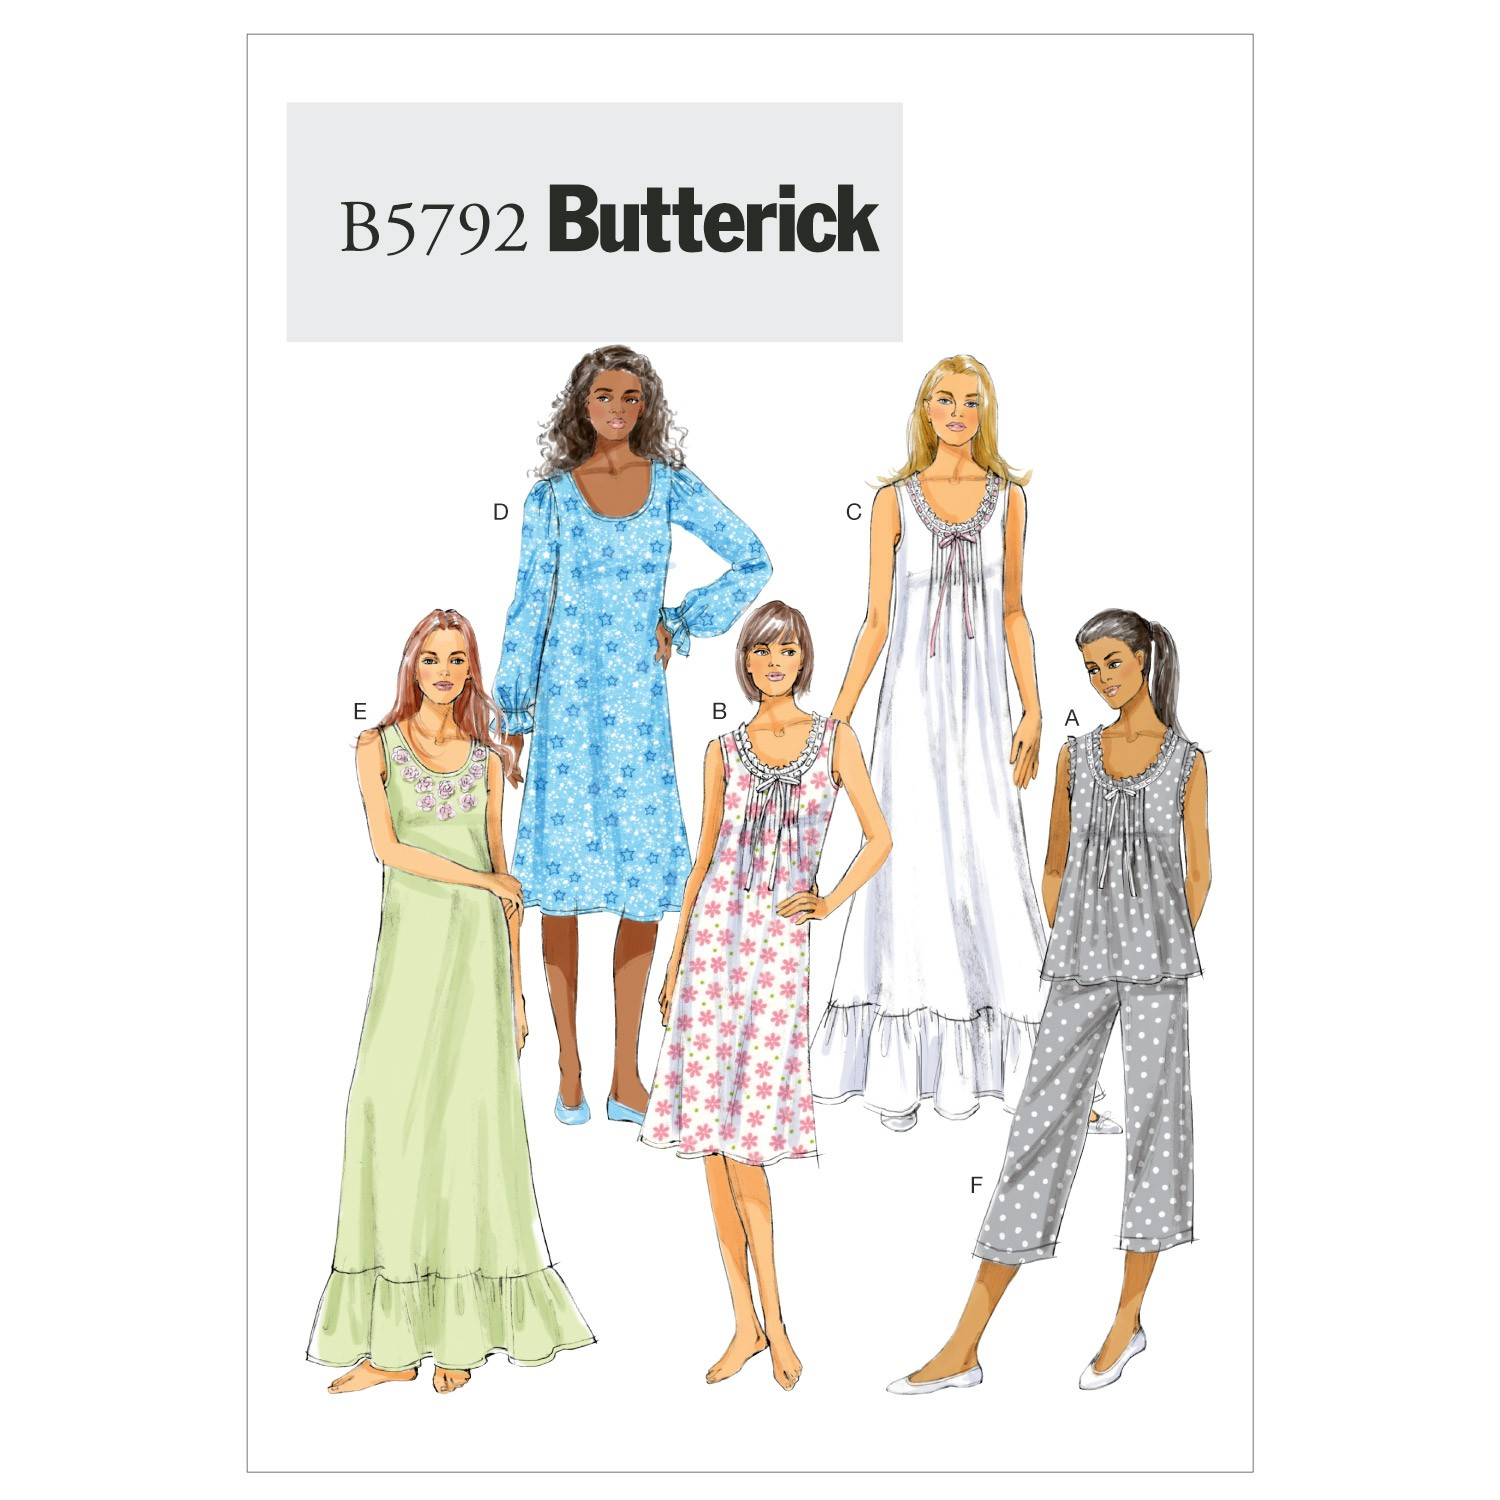 Butterick Sewing Pattern 5792 Misses' Top Nightgown & Trousers